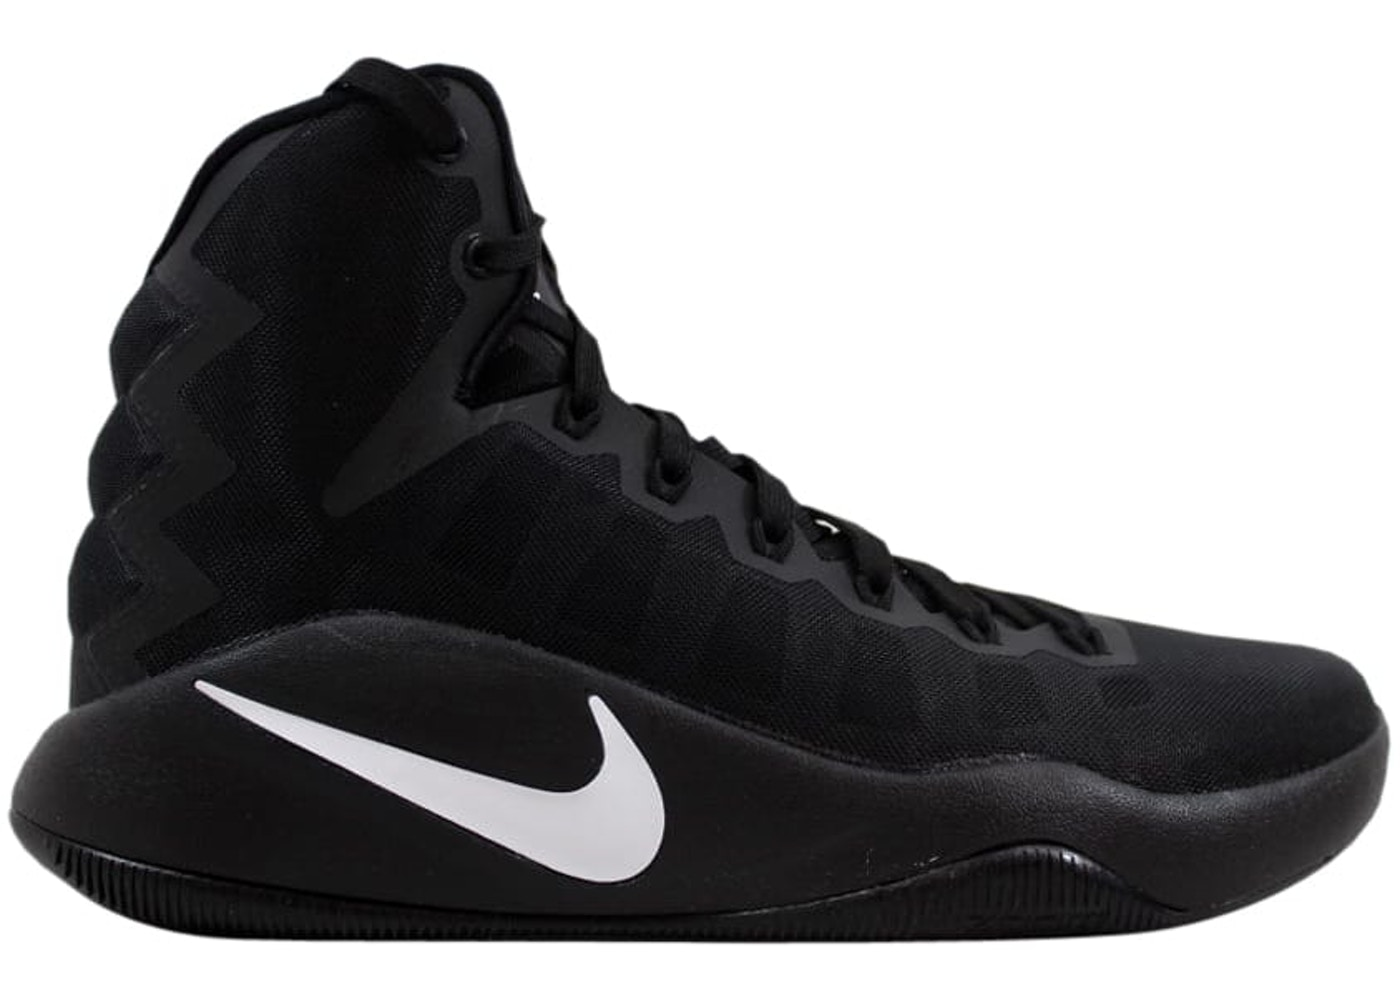 newest 9ffbb 3fd68 Sell. or Ask. Size  12. View All Bids. Nike Hyperdunk 2016 Black